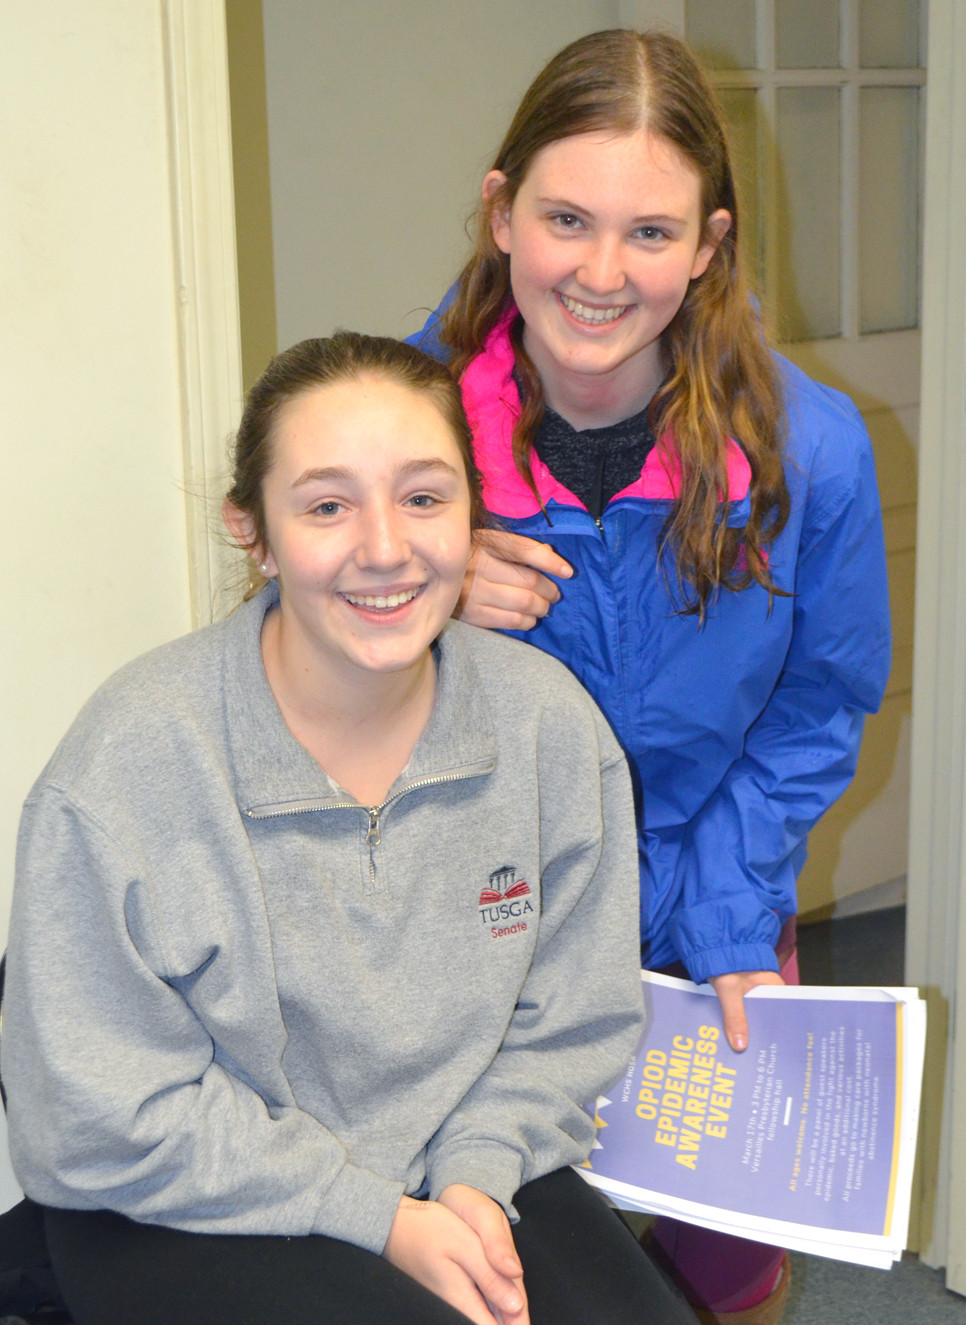 ARLA FAVETTO, left, and Madi O'Daniel, sophomores at Woodford County High School, helped organize the Opioid Epidemic Awareness Event on Sunday, March 17.  WCHS students Reagan Cole and Allison Bilbrey also contributed to this community awareness project they'll present at the state HOSA competition March 21. (Photo by Bob Vlach)